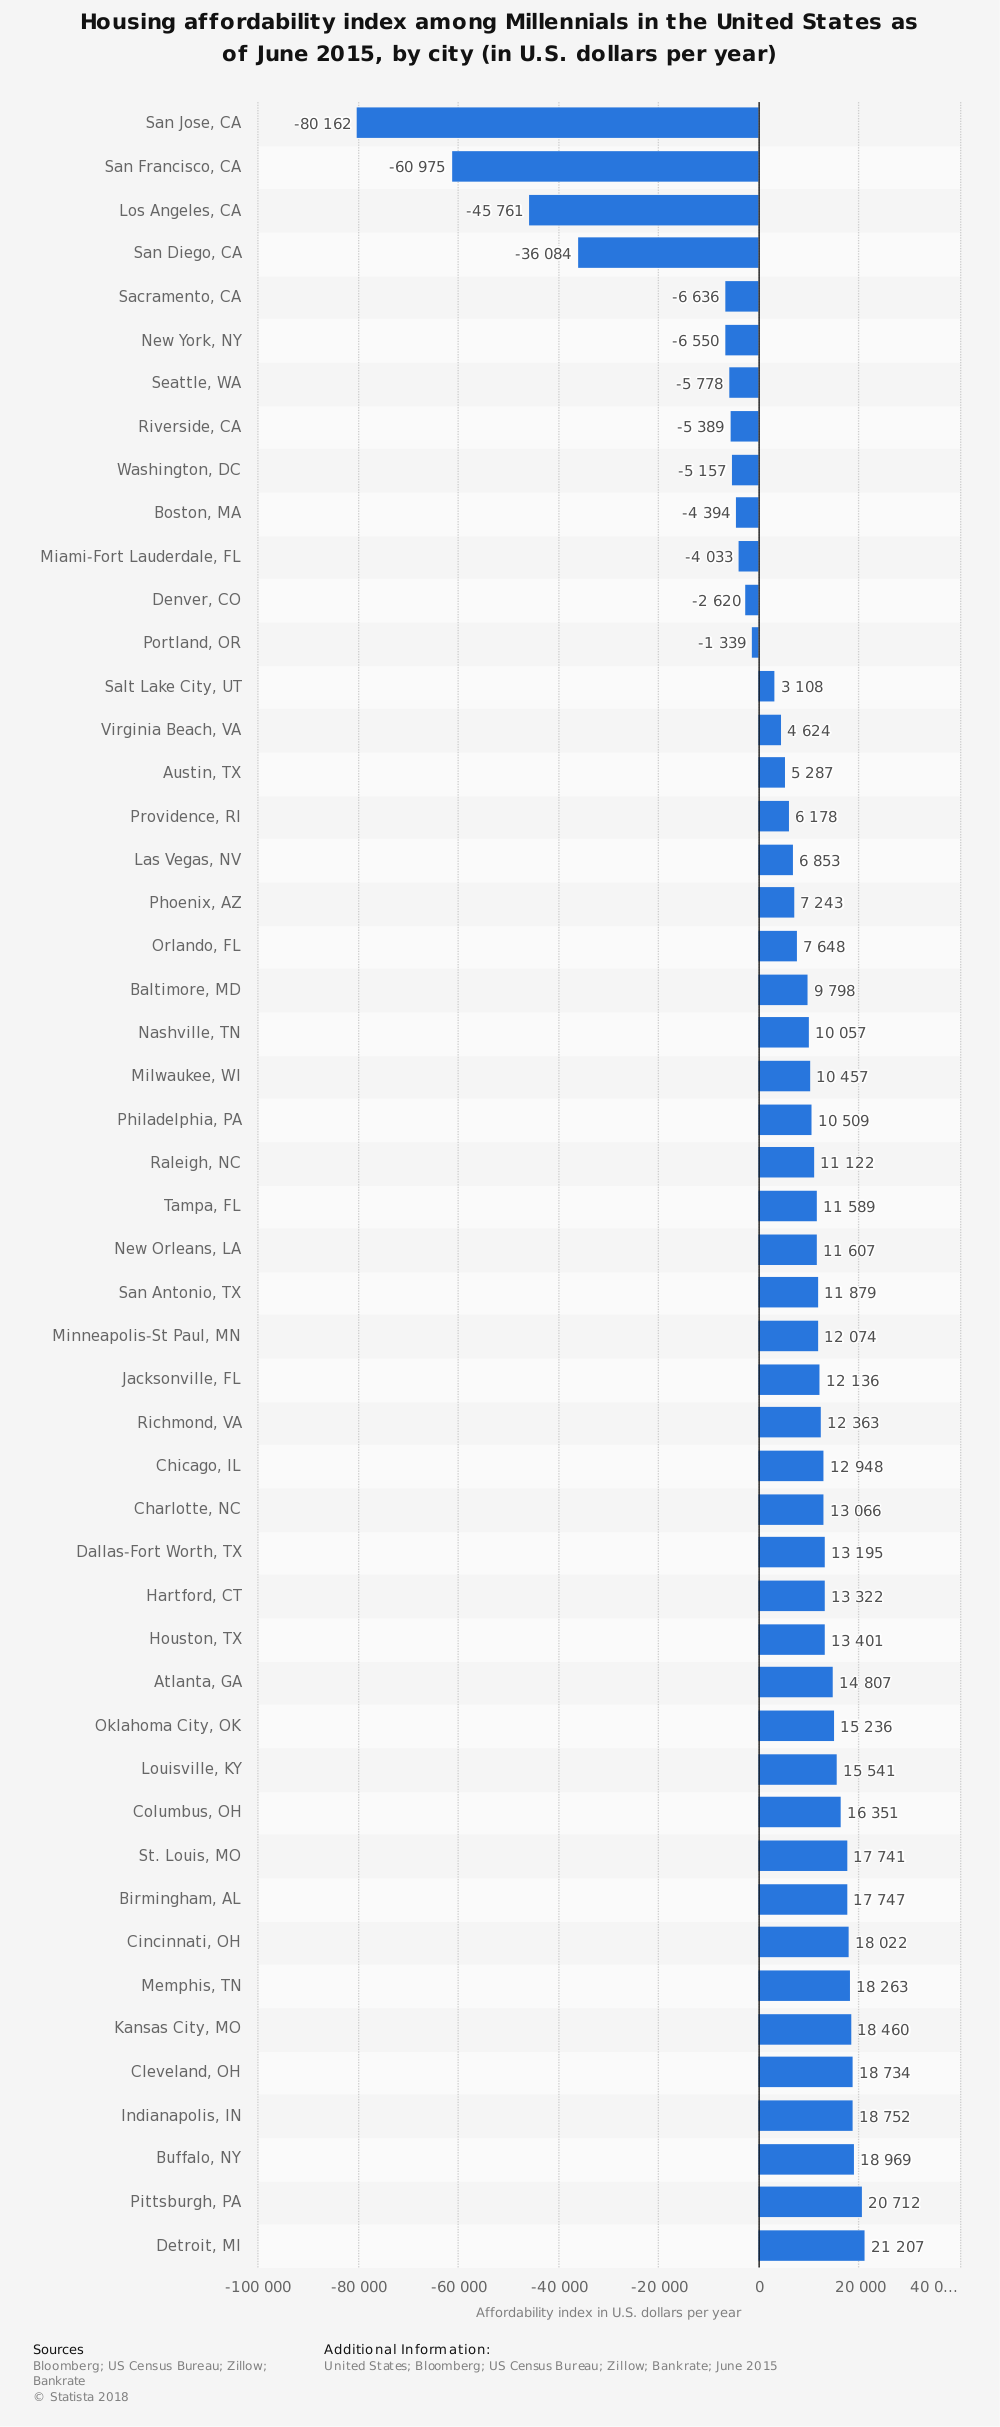 Statistic: Housing affordability index among Millennials in the United States as of June 2015, by city (in U.S. dollars per year) | Statista